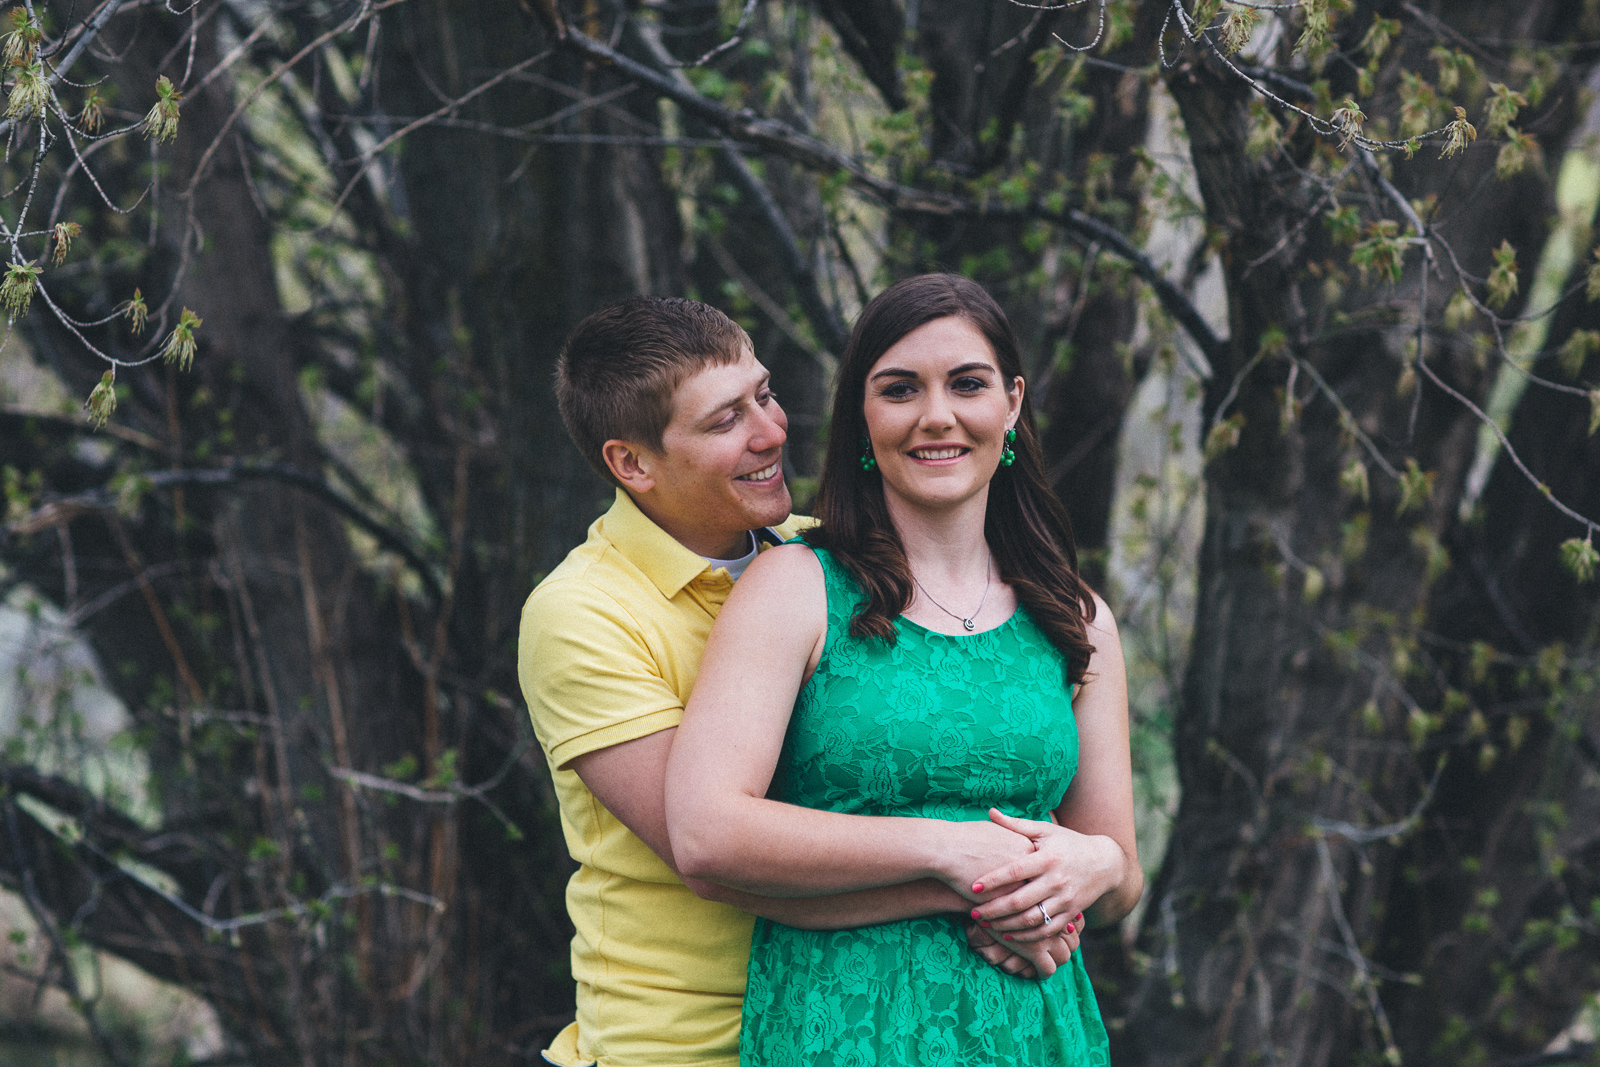 025-engagement-trees-fun-wedding-train-aughing-durango-colorado-farmington